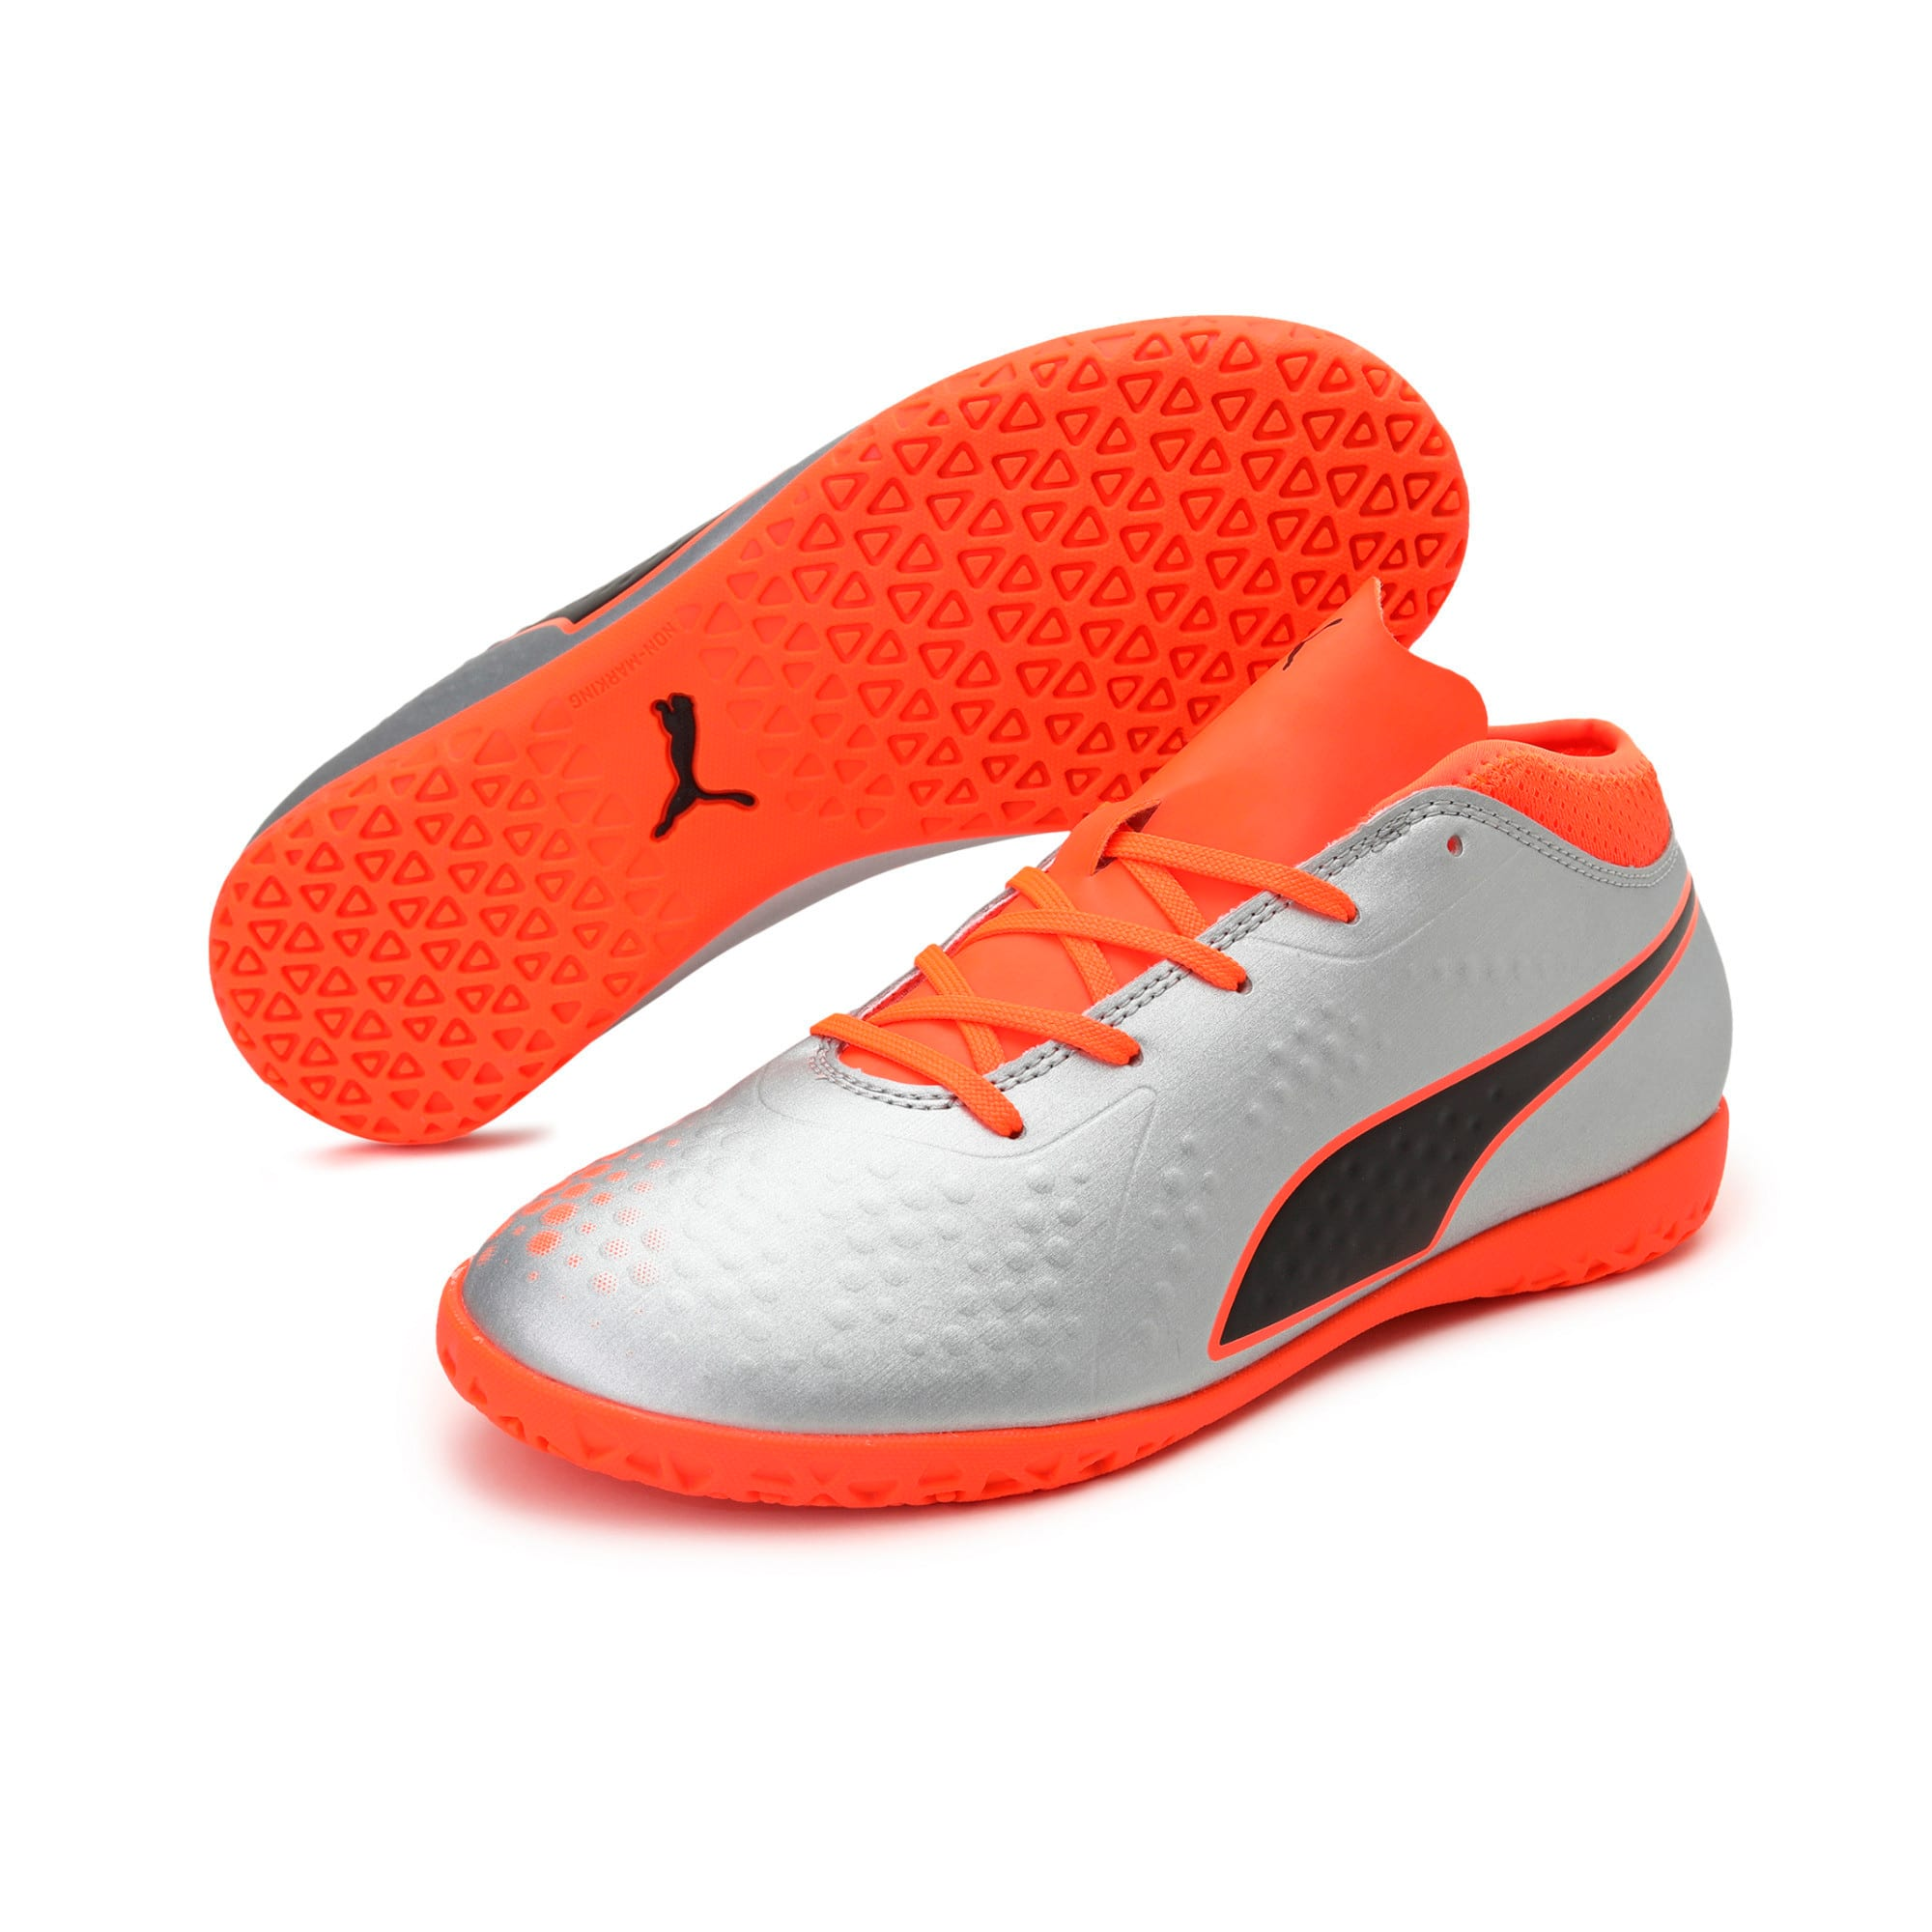 Thumbnail 2 of PUMA ONE 4 Synthetic IT Kids' Football Shoes, Silver-Orange-Black, medium-IND